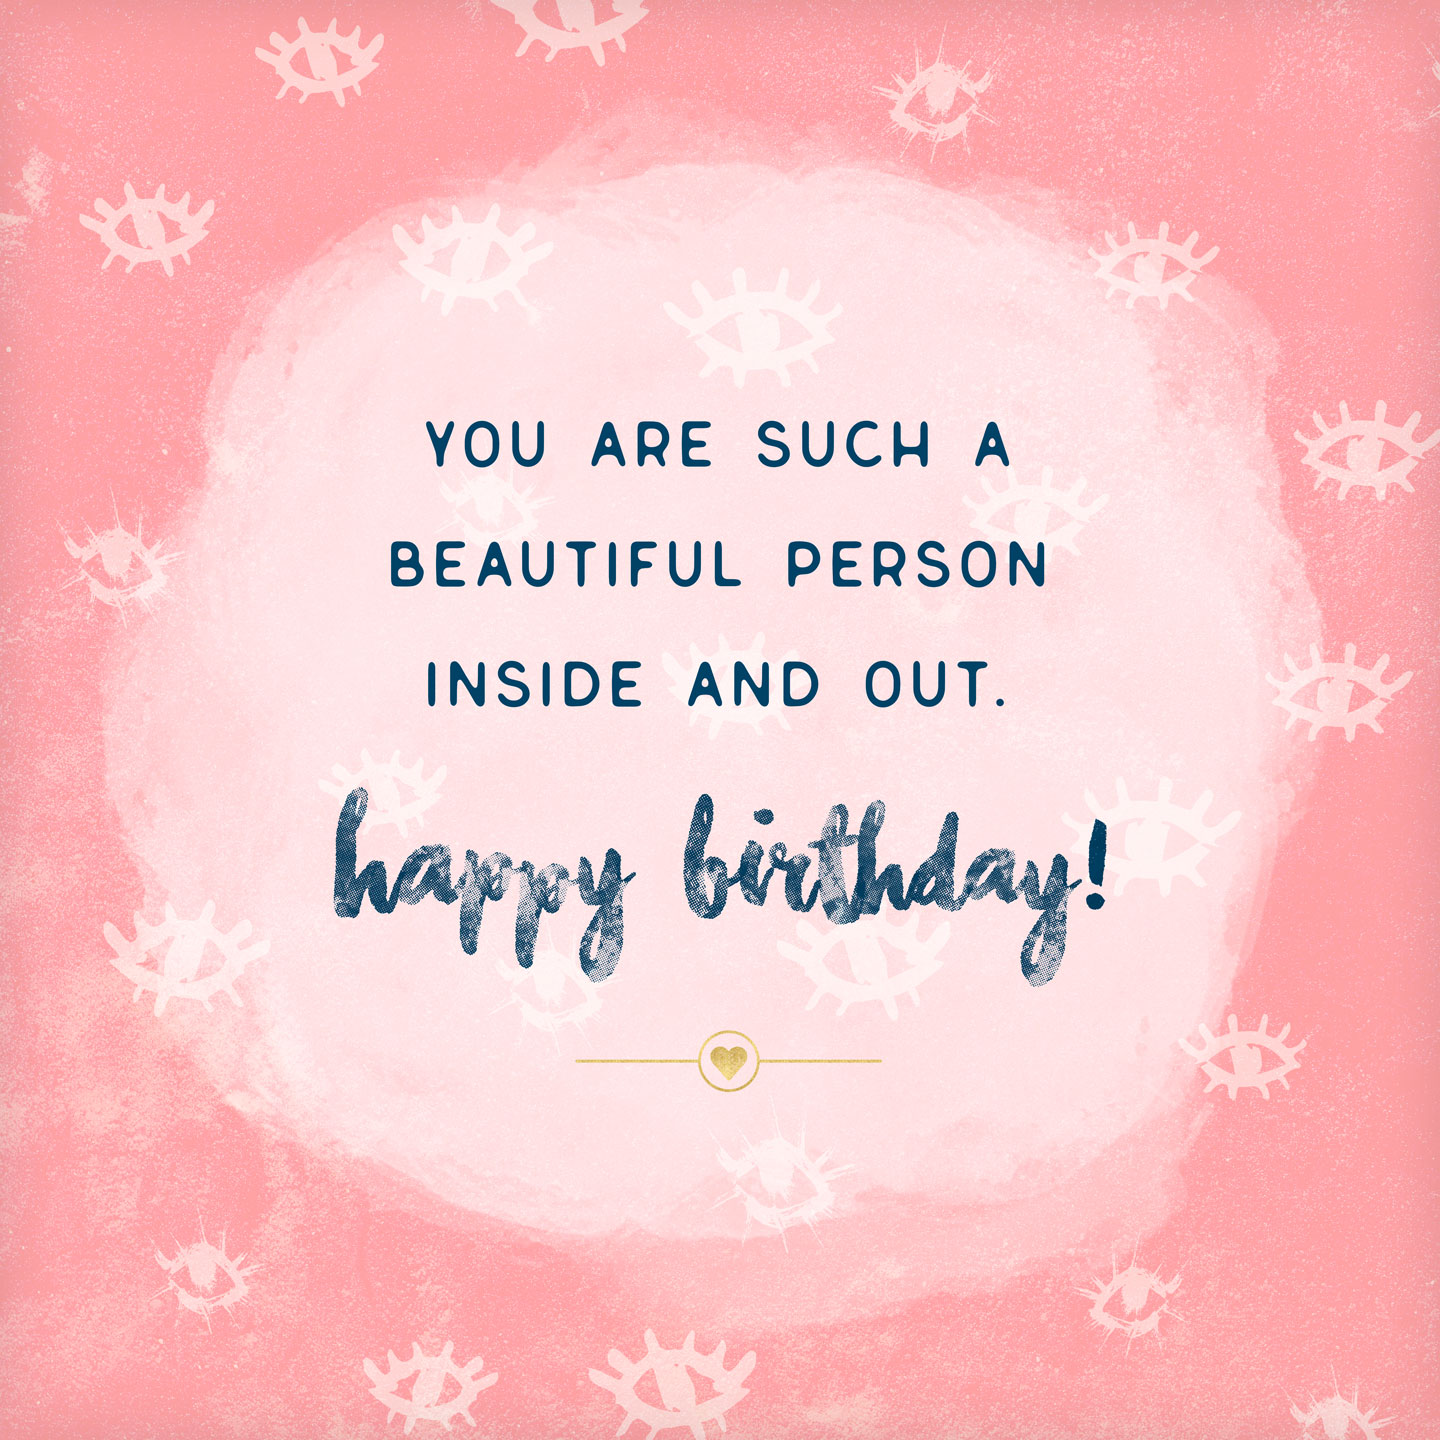 friend birthday greeting card messages ; birthday-card-messages-friend